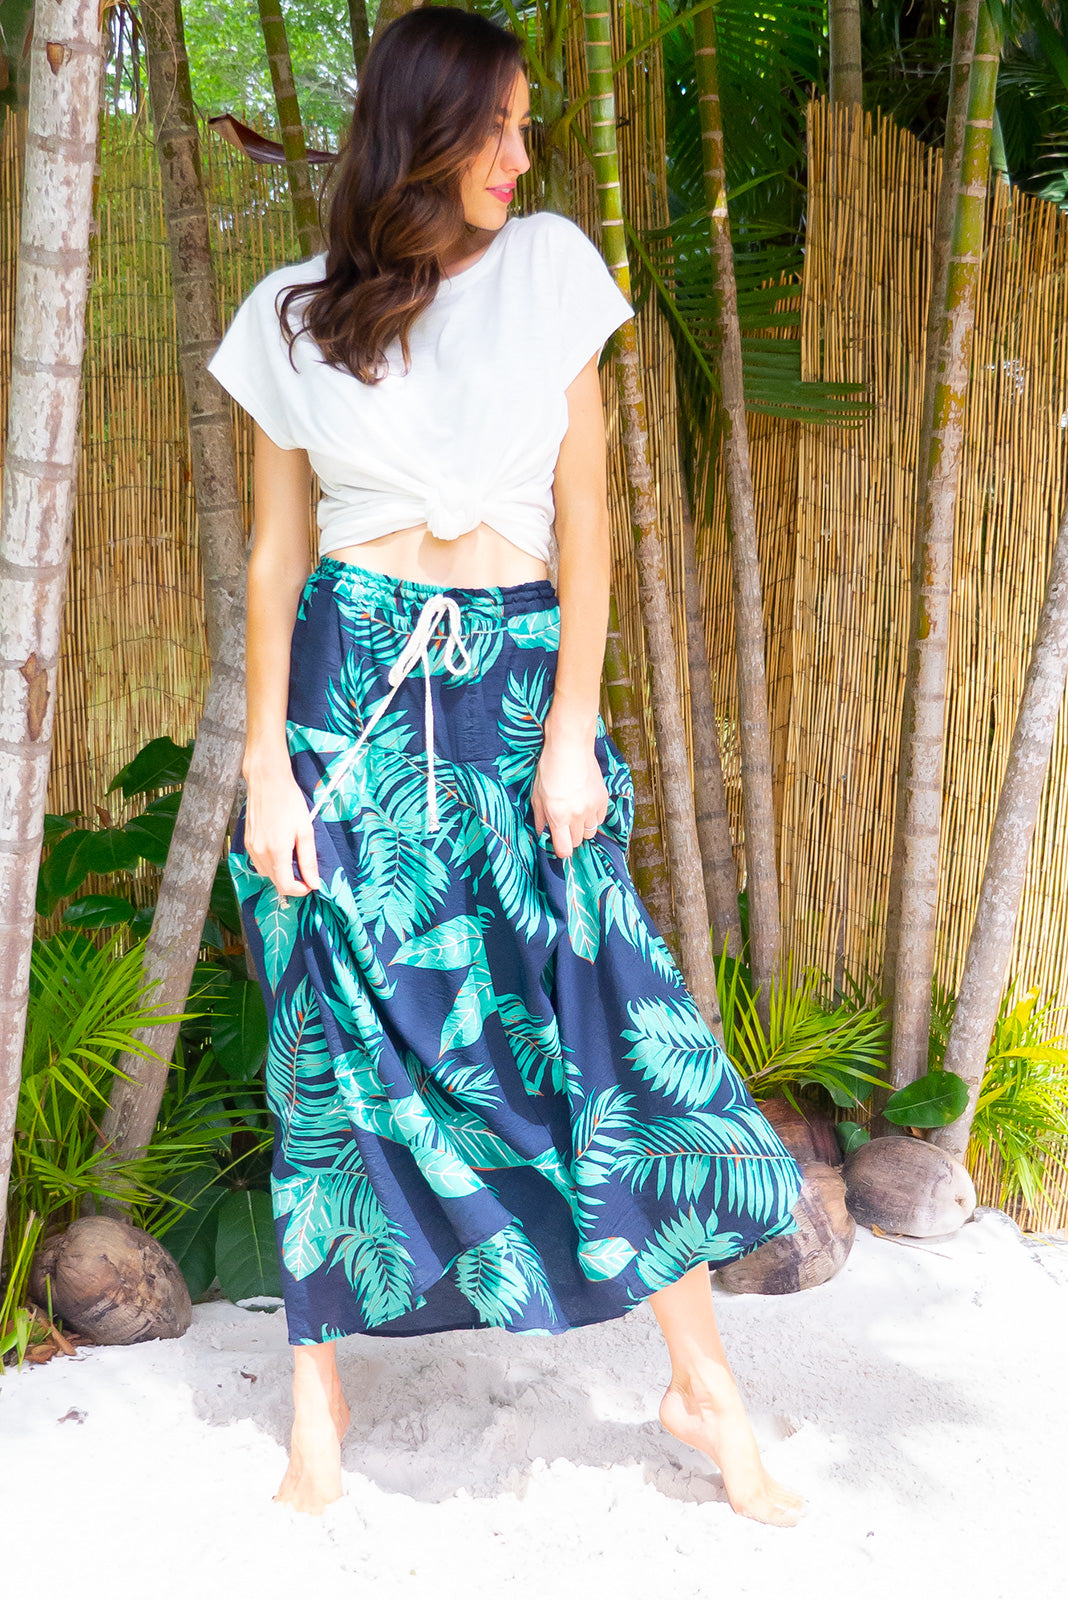 Catalina Shadow Palms Navy Maxi Skirt features an elastic waist, side pockets comes in a textured tropical botanical print a rayon nylon blend